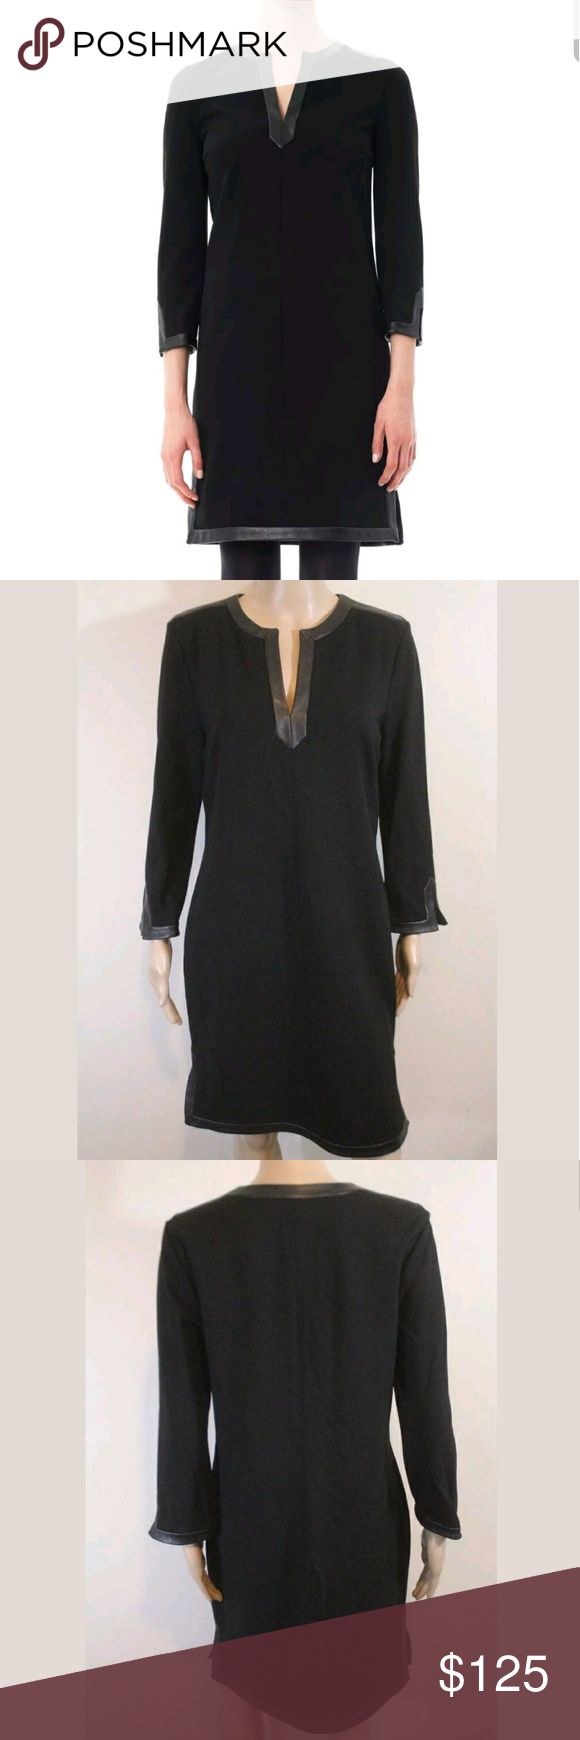 NWT Diane Von Furstenberg Dita Leather Shirt Dress Condition   - BRAND NEW WITH TAG STILL ON! RARE!  Noted Features   - Pulls on, stretchy ponte knit - Real soft leather trim, slits  Measurements   Bust: 18 1/2-24 1/2 inches across (37-49 around)  Waist: 17 inches across (34 around with room)  Hip: 20-26 inches across (40-52 around)  Length: 37 inches long  Sleeve: 20 inches long  Size    size 12  Material  71% viscose, 23% polyester, 6% spandex, combo is 100% leather Diane Von…